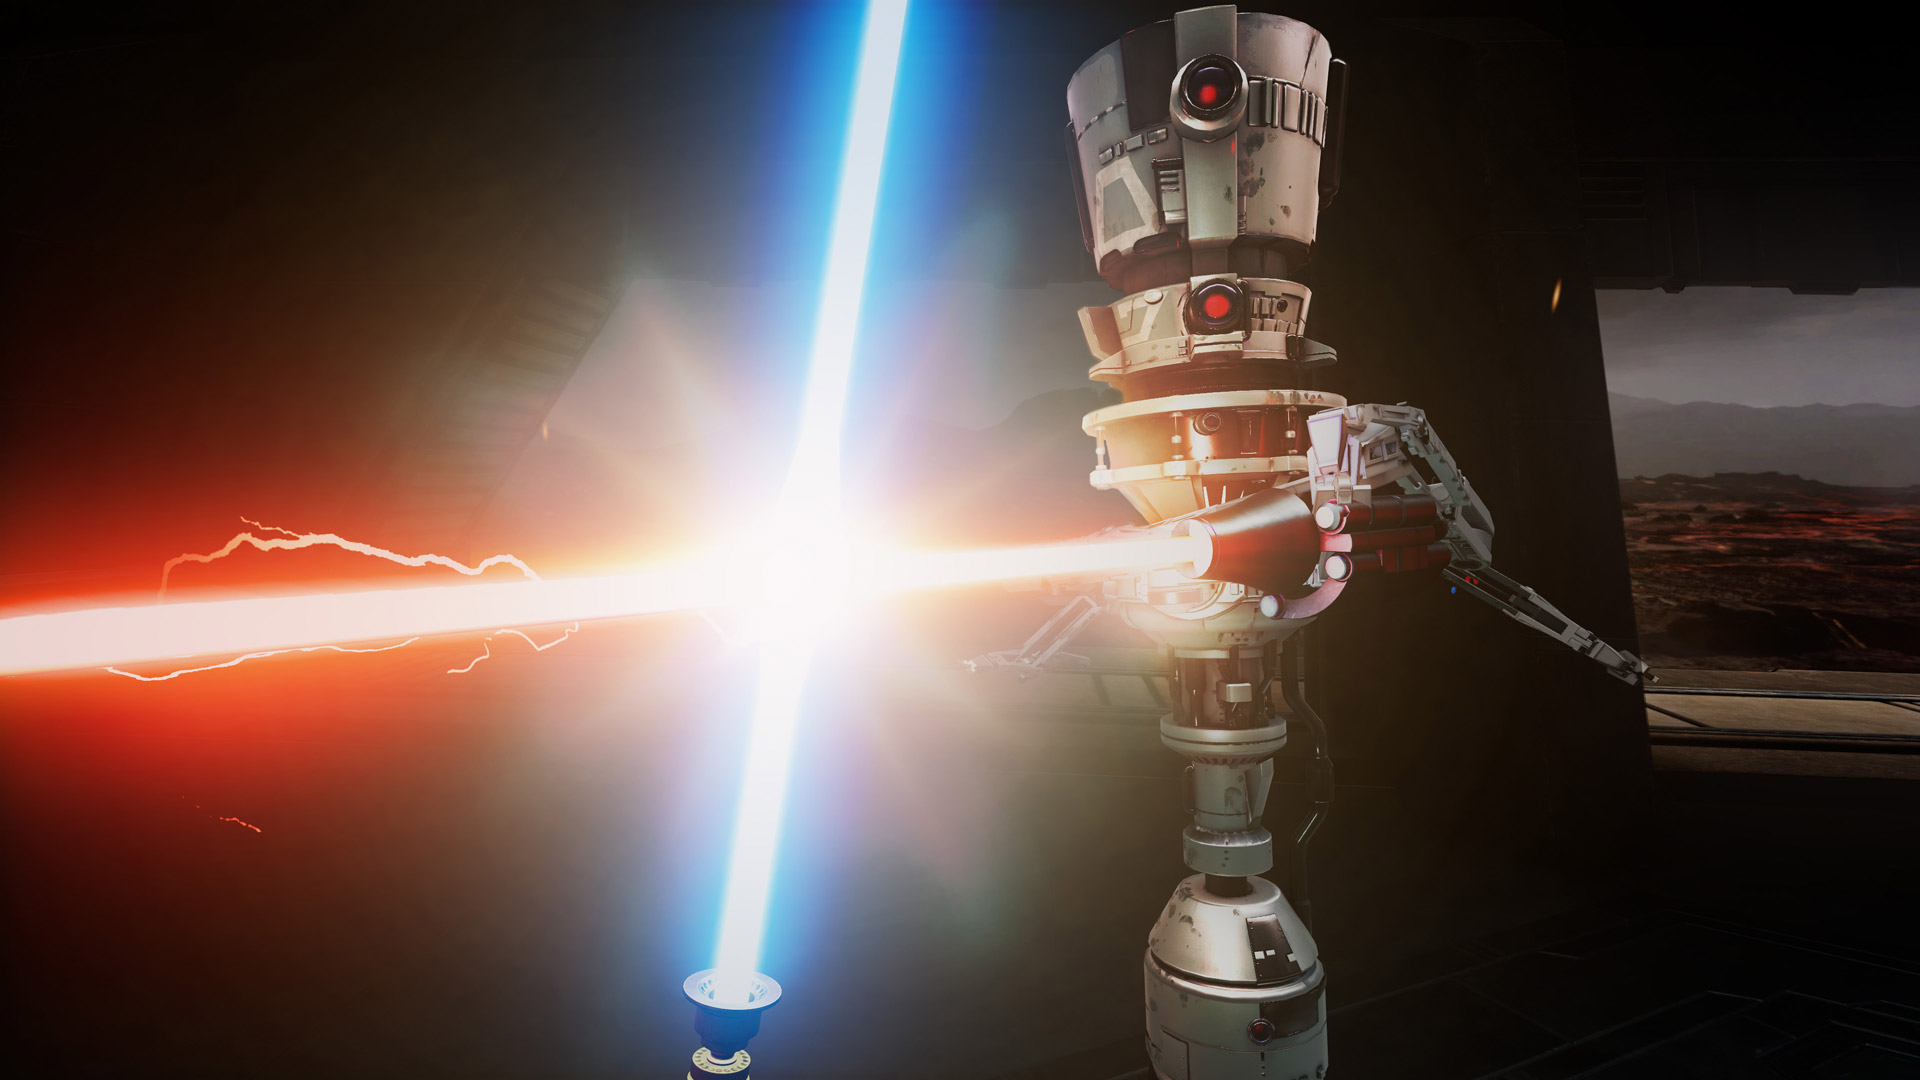 'Star Wars Vader Immortal – Episode 2' Will Focus on Force Powers, Episode 1 on Lightsabers